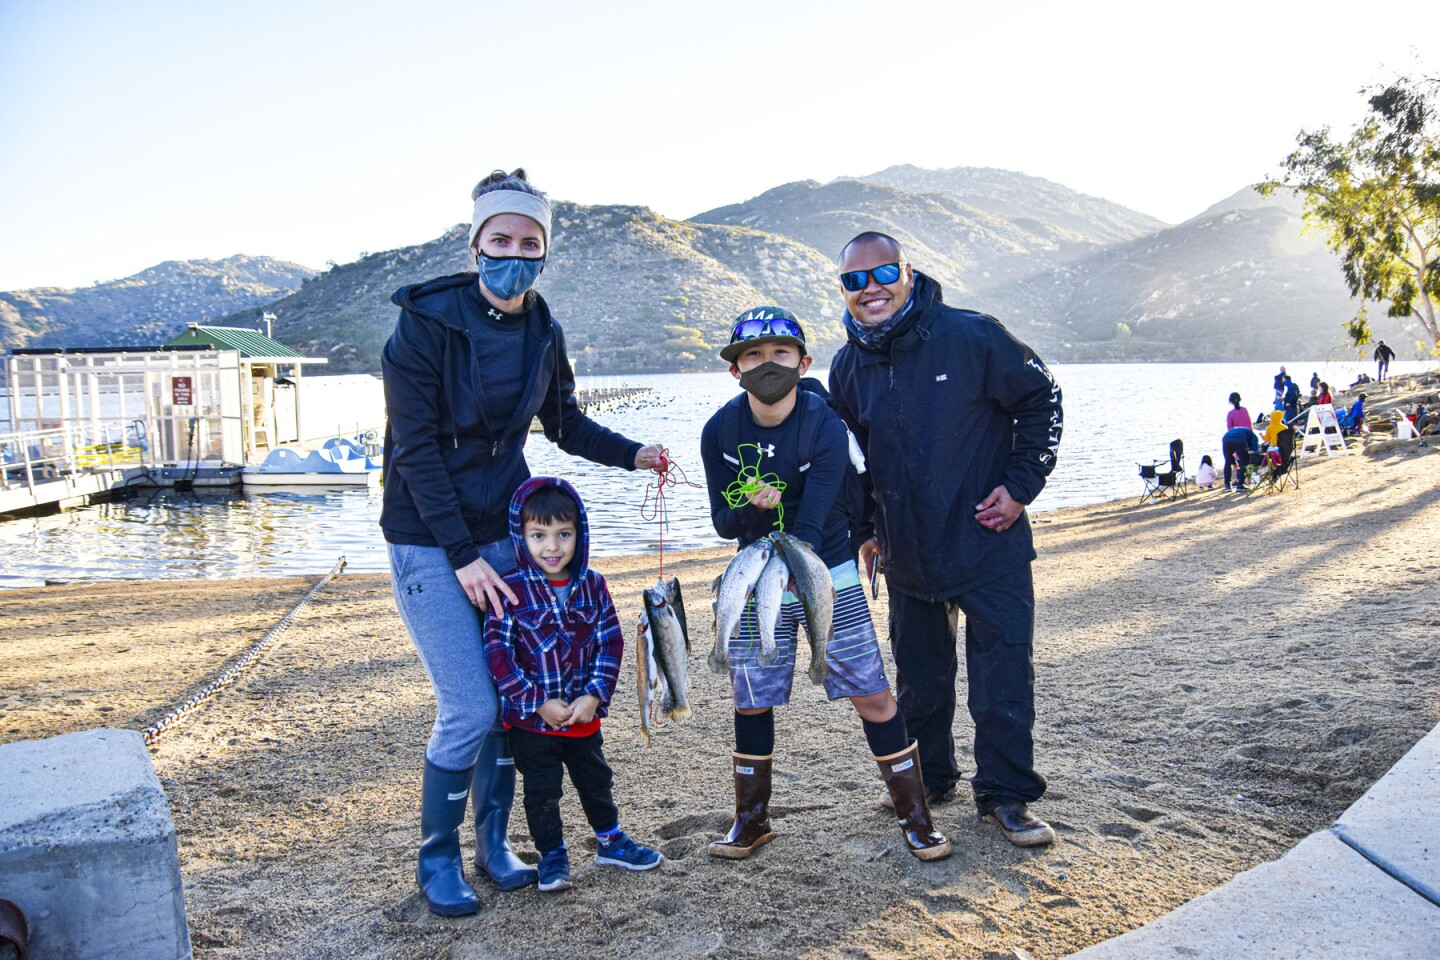 Tia, August, Kayden and Shaun Cassion. Kayden shows his catch after fishing for an hour.